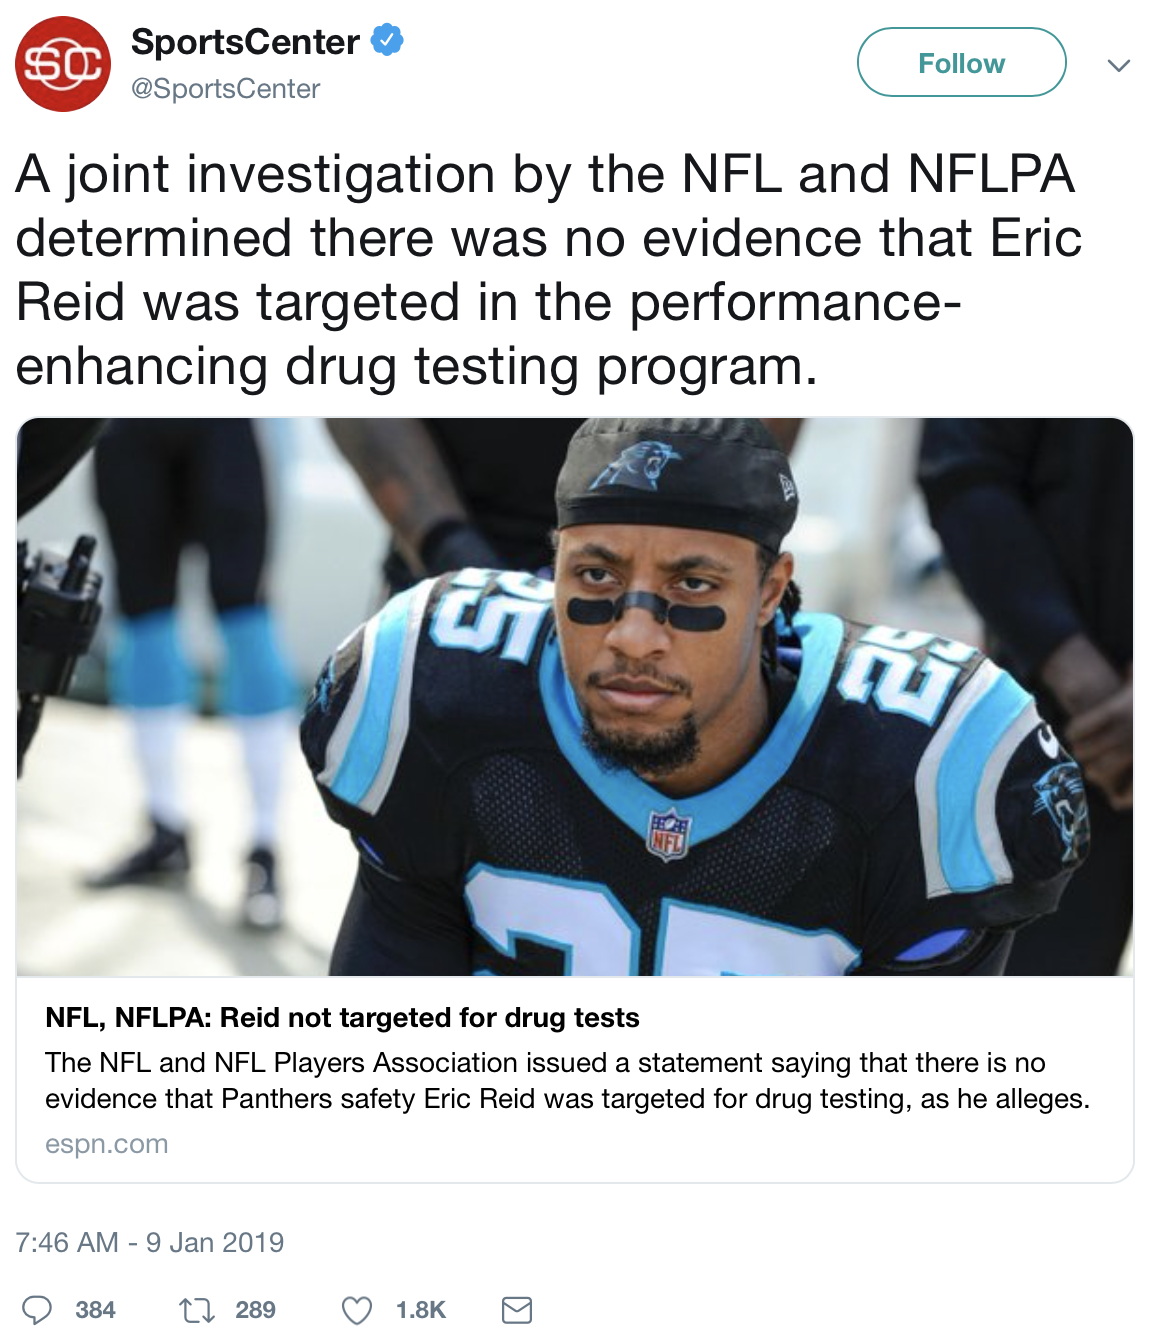 The one time pro-bowler is insinuating the NFL is unfairly punishing him  over specific actions d4fdbf3fb